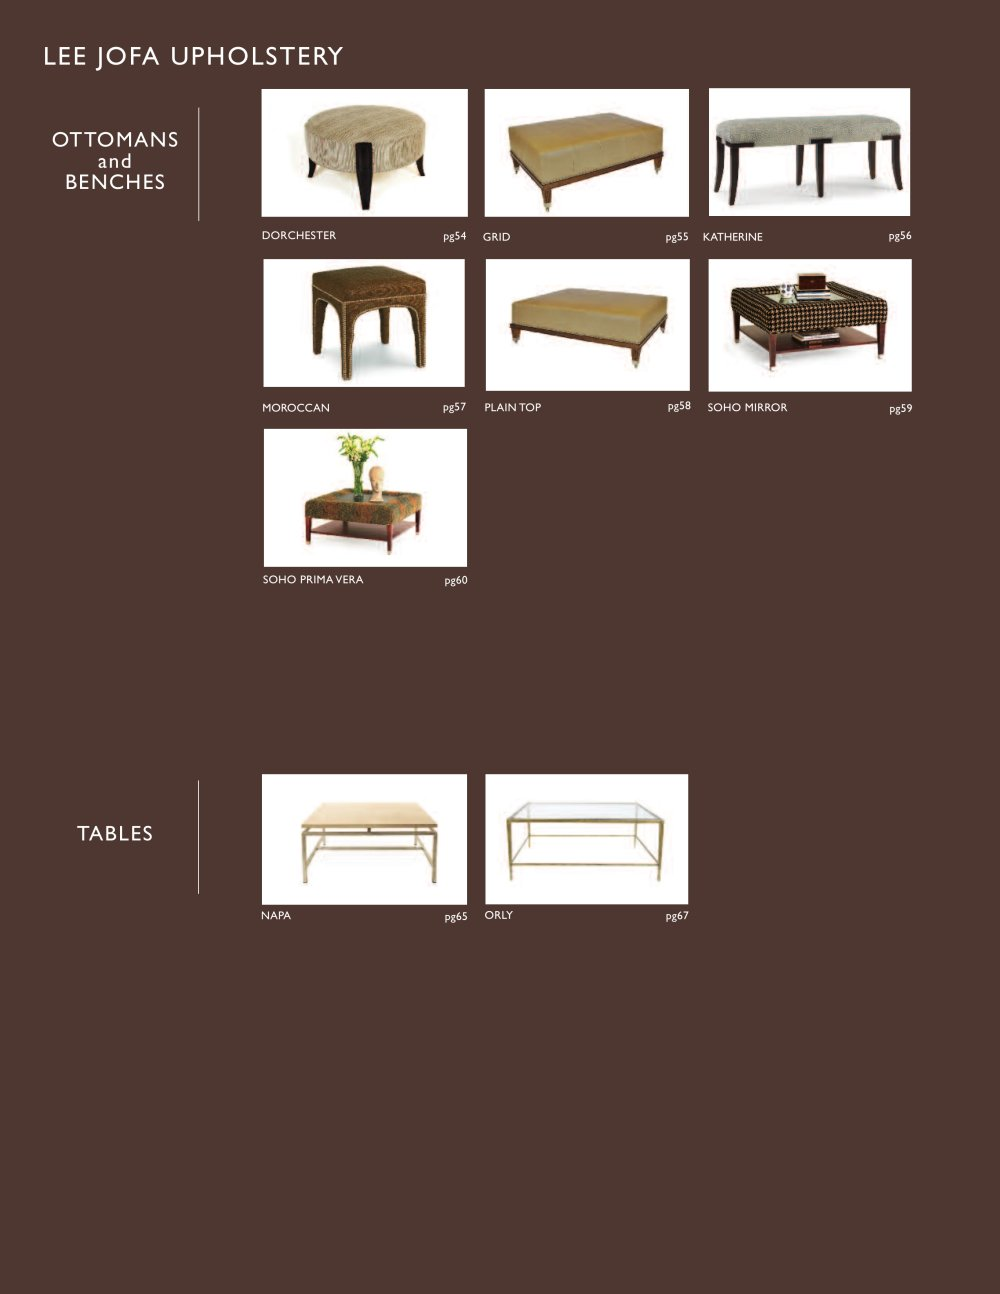 Furniture Upholstery 2013 | FURNITURE